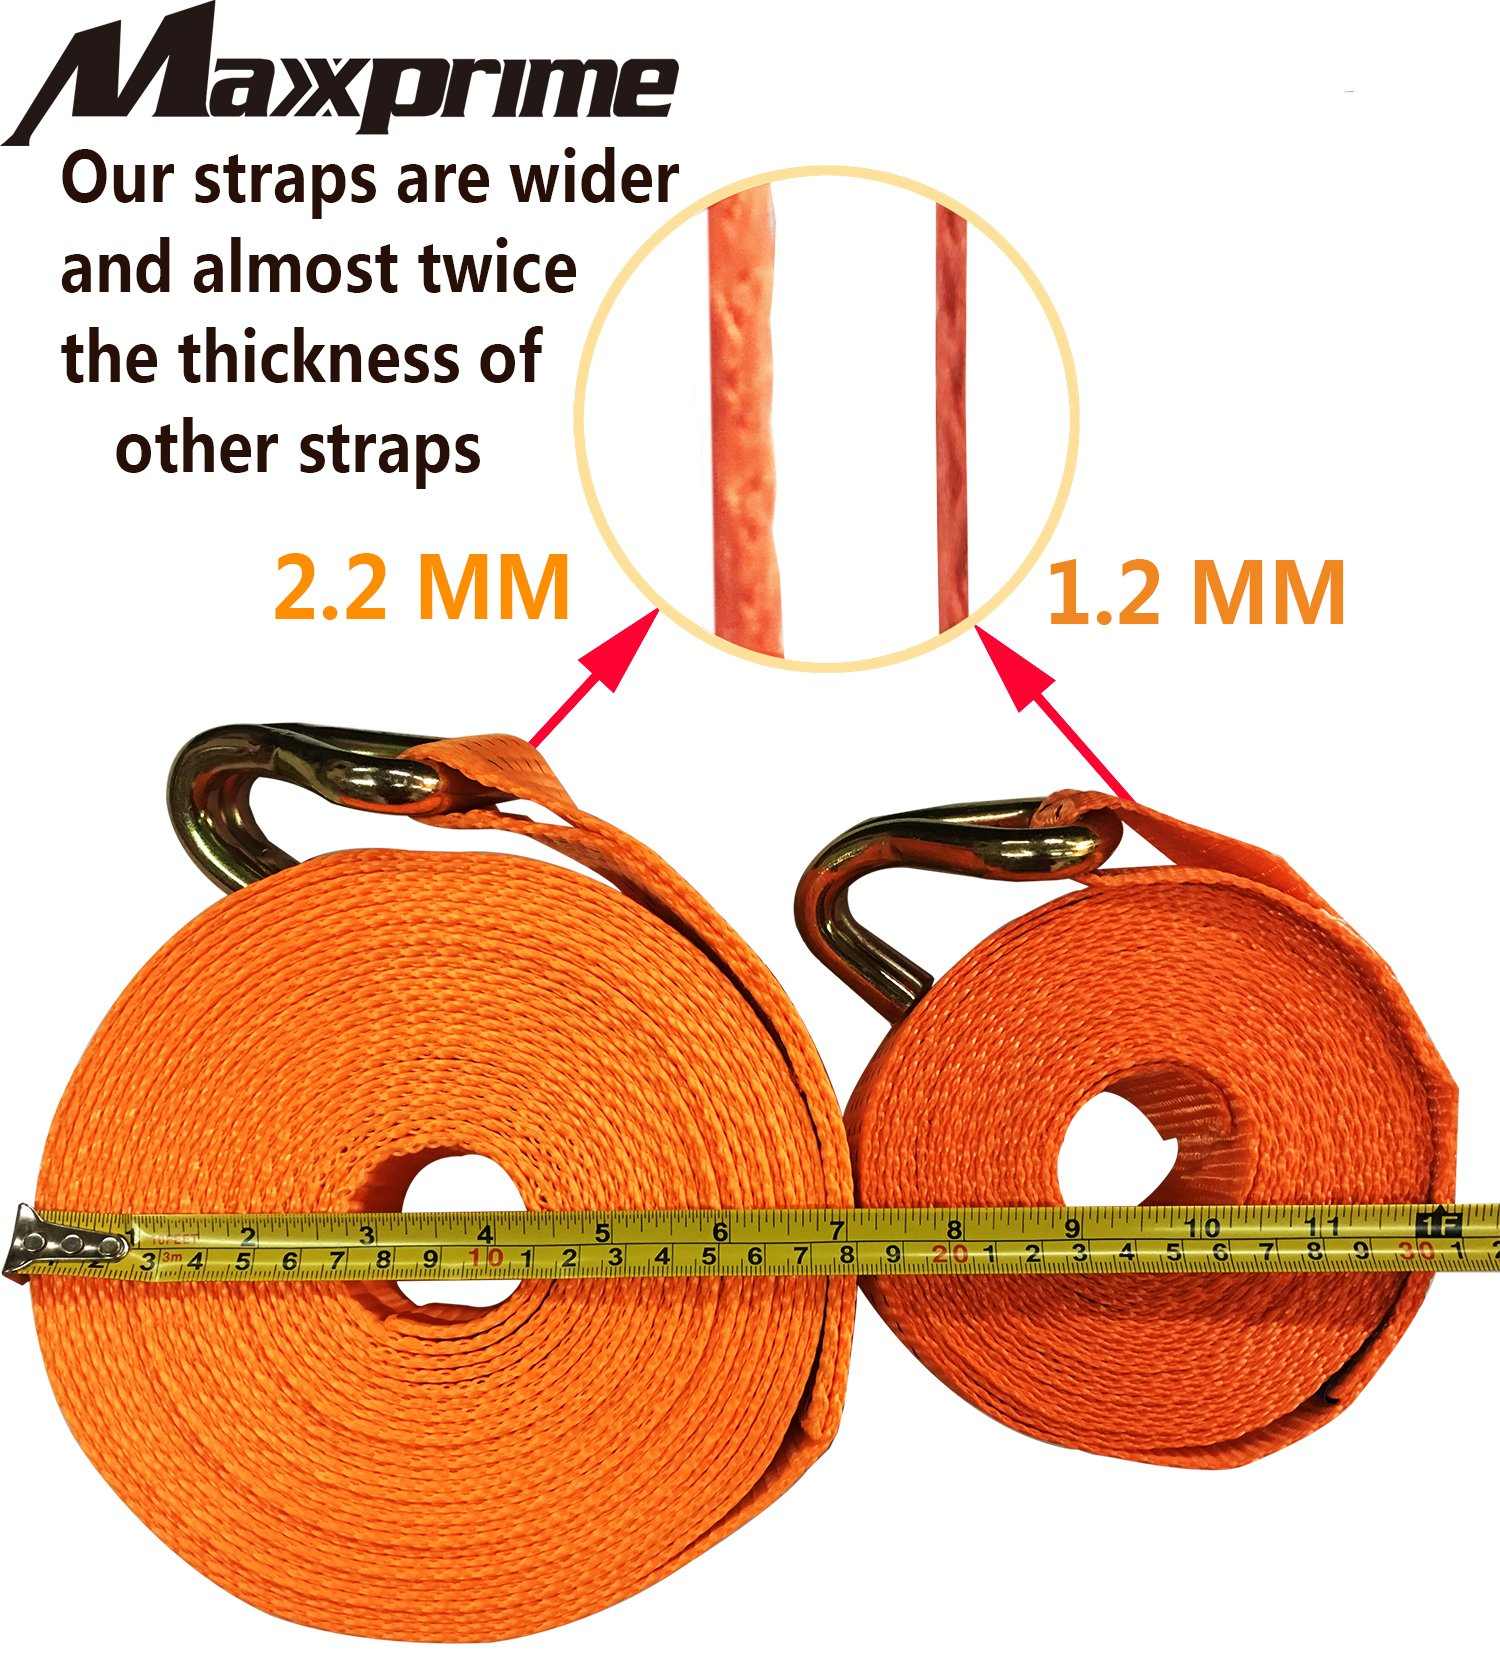 """Premium Ratchet Tie Down, Maxxprime 33' x 2"""" 10, 000 lbs Rated Capacity Tie-Down Ratcheting Cargo Truck Straps with Double J-Hooks - German Quality by MAXXPRIME (Image #2)"""